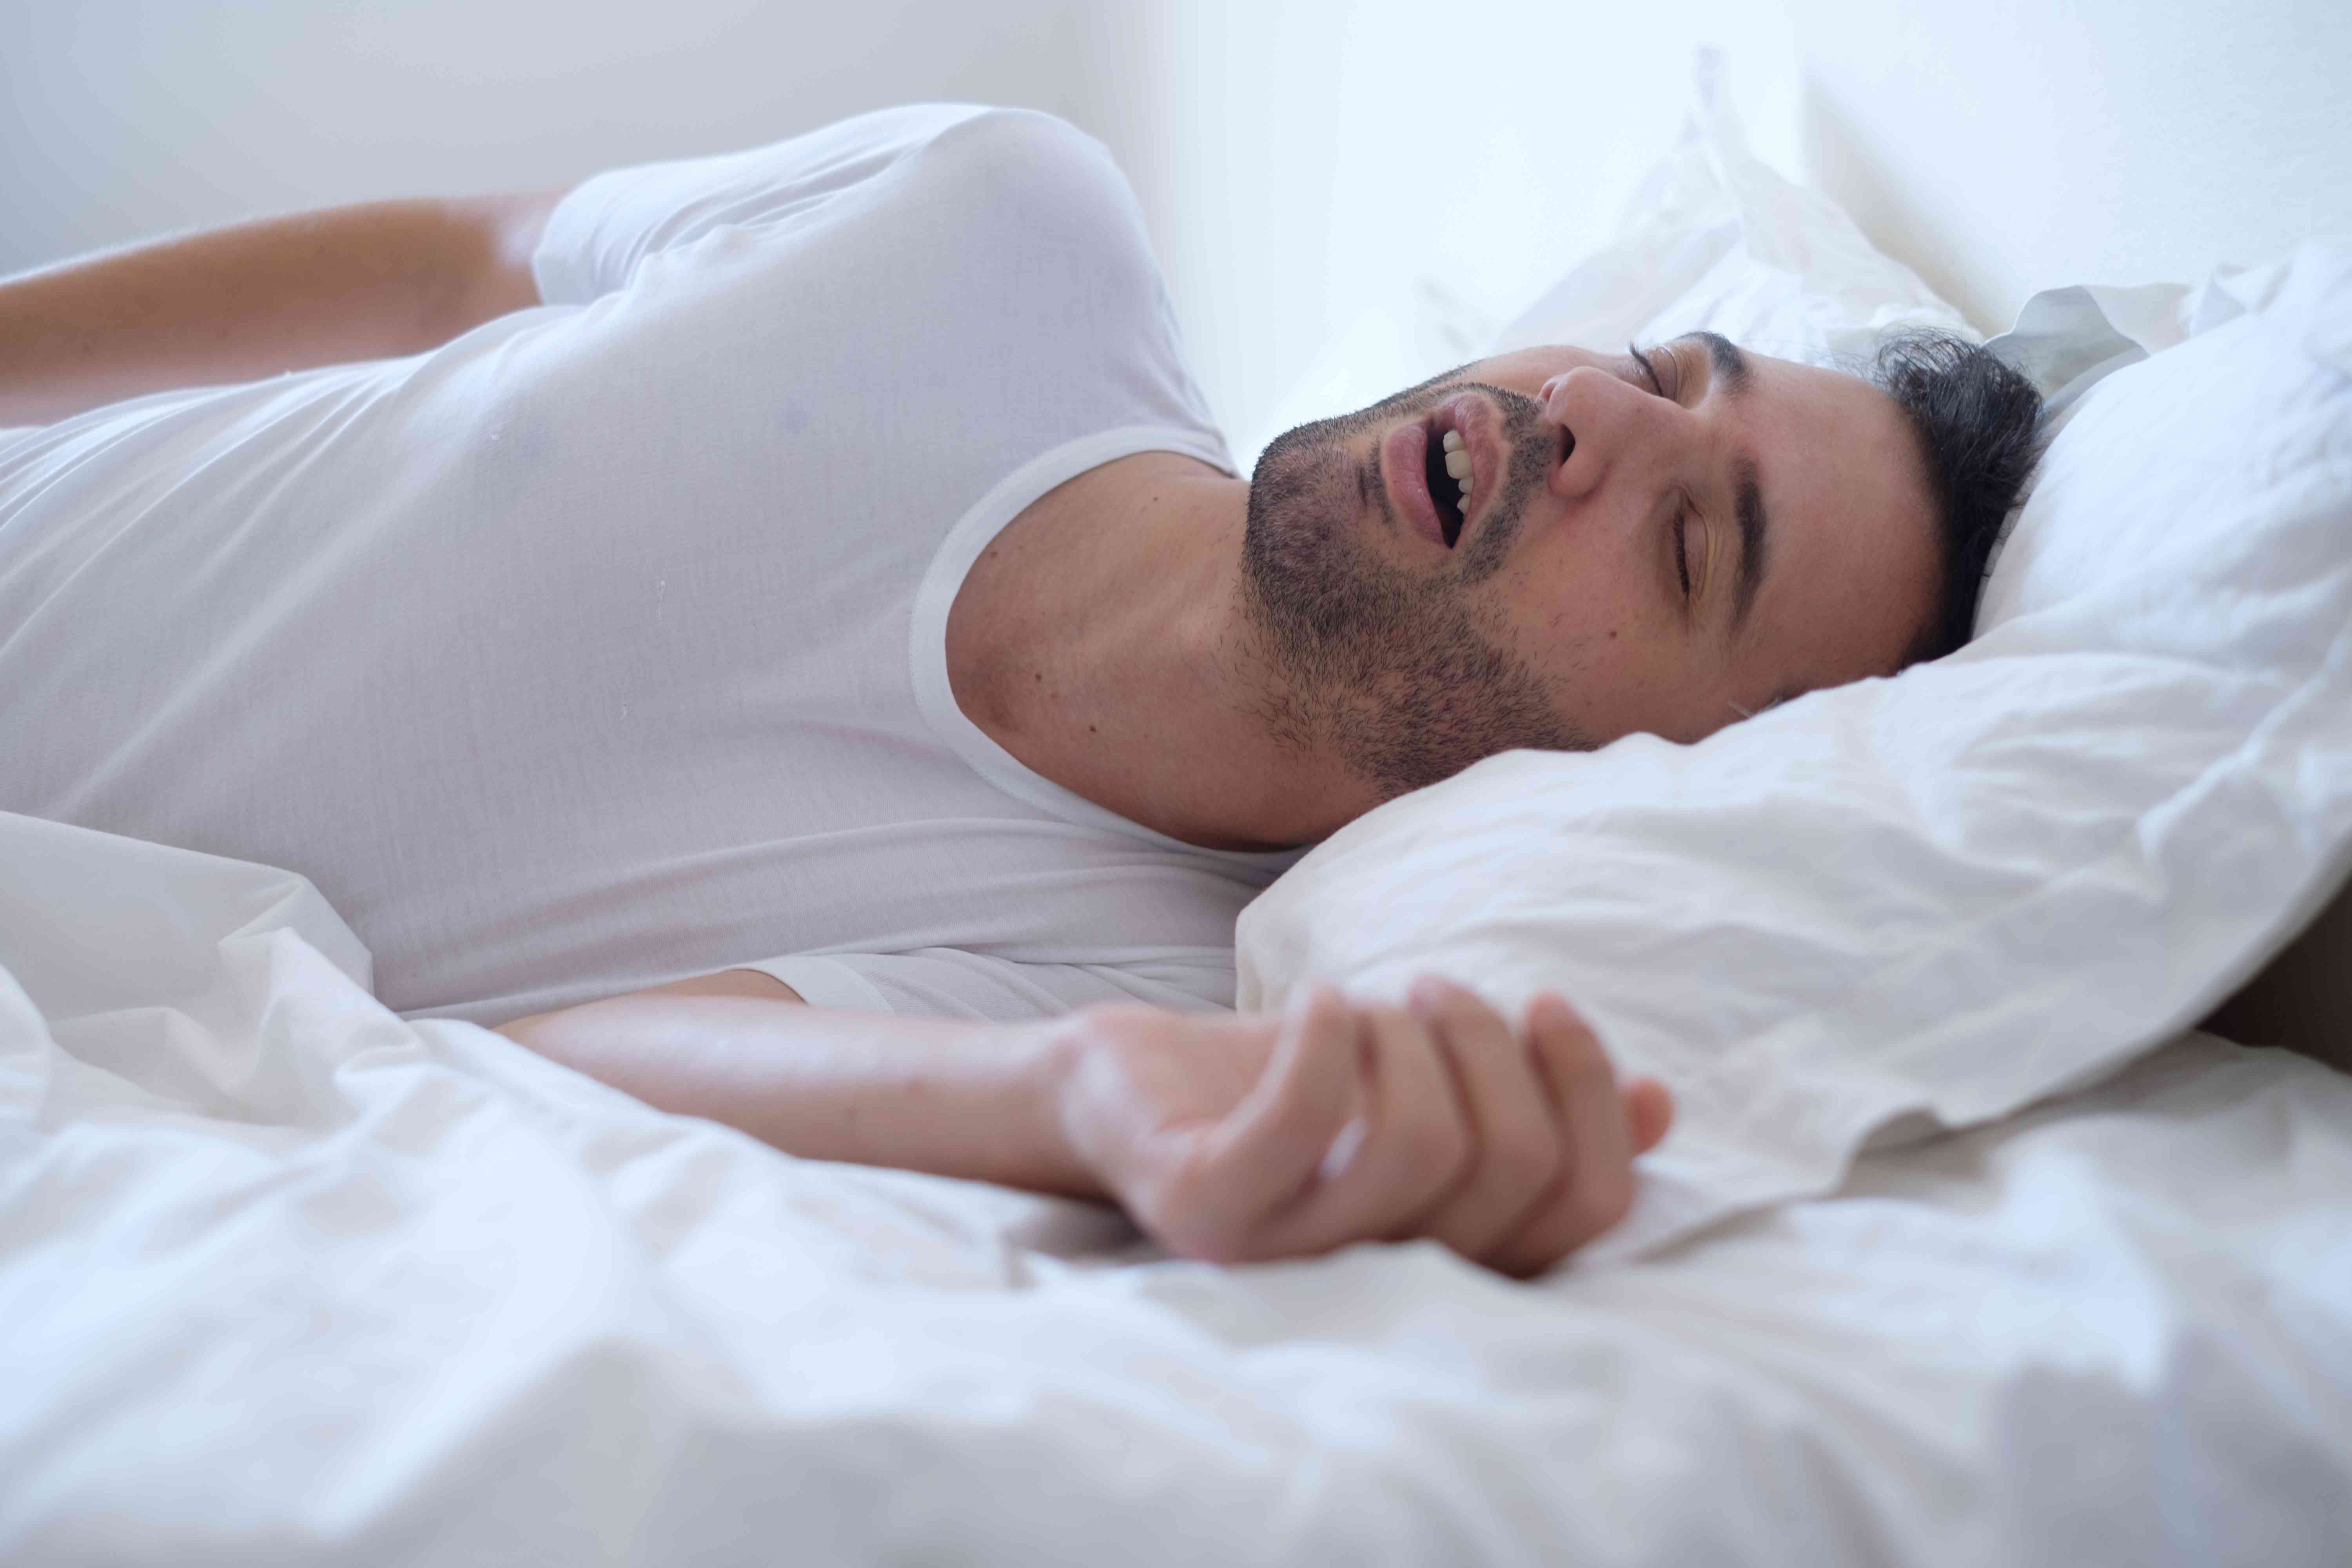 A man snoring while he sleeps in bed